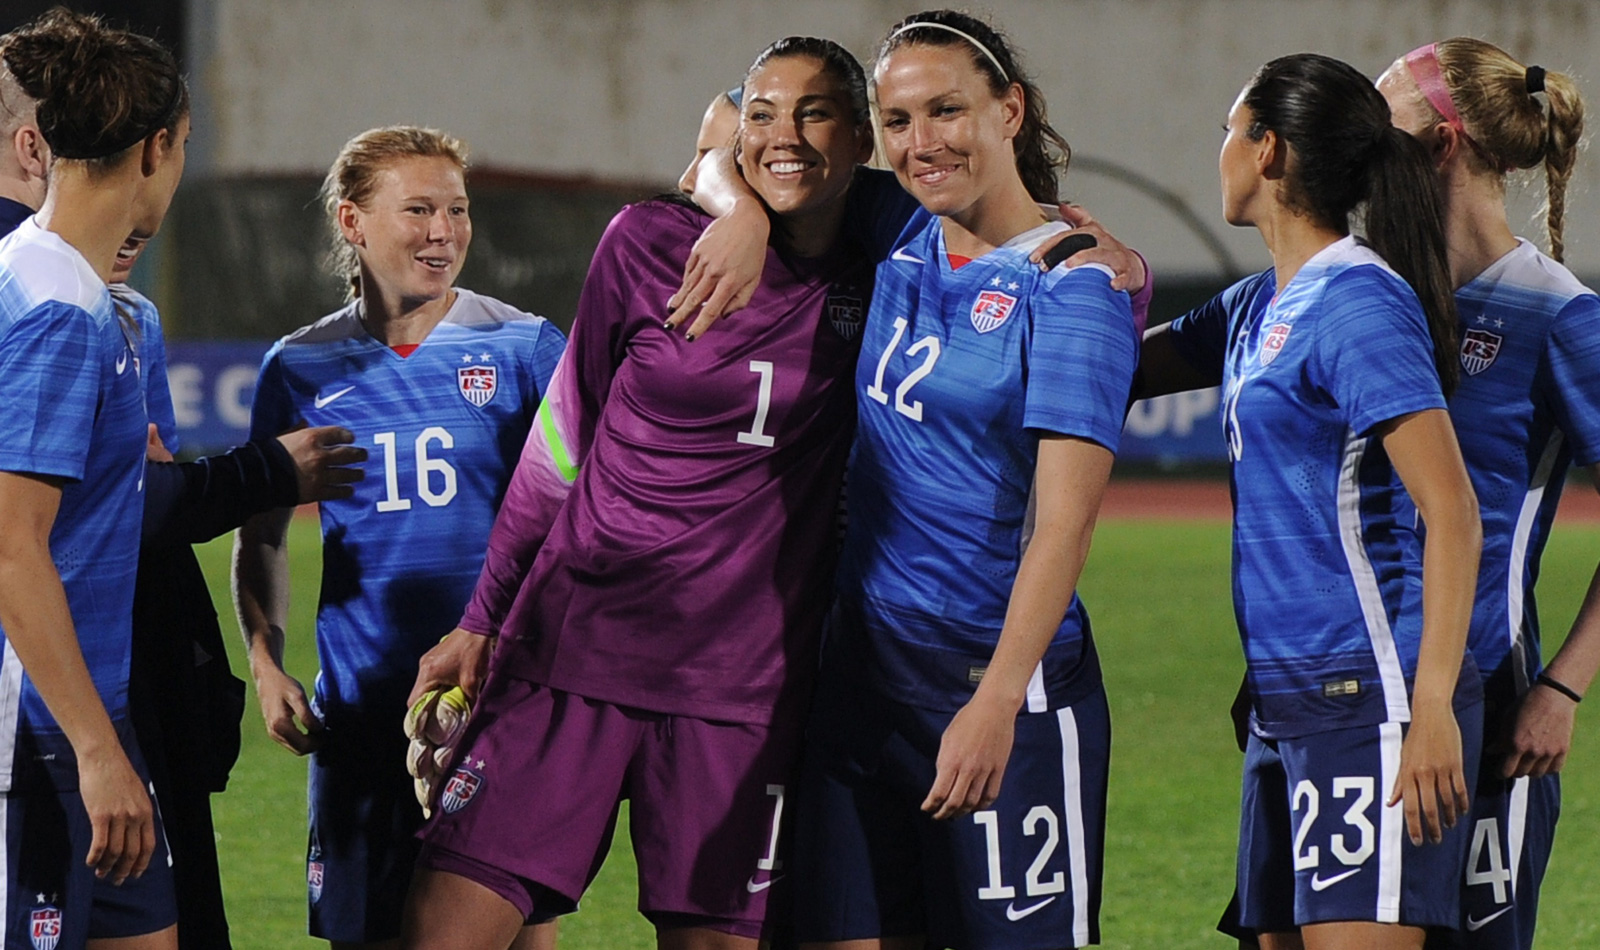 The USWNT opens the Algarve Cup with a 2-1 win over Norway, marking Hope Solo's return from a 30-day suspension with a come-from-behind victory. Carli Lloyd scored both goals for the Americans.